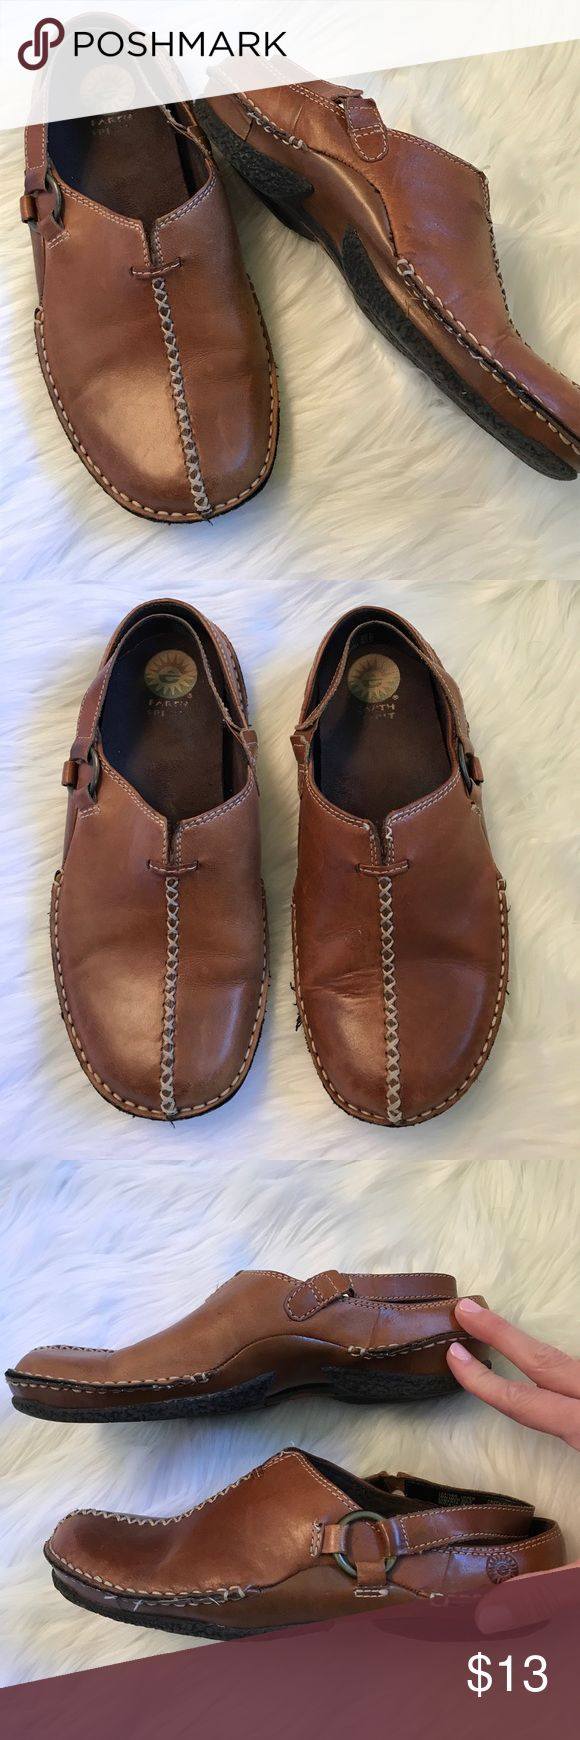 Earth Spirit Creek Sling Leather Upper Shoe Sz 8 Worn a fair amount. No major flaws. They have some life left in them! Great brown shade. earth spirit Shoes